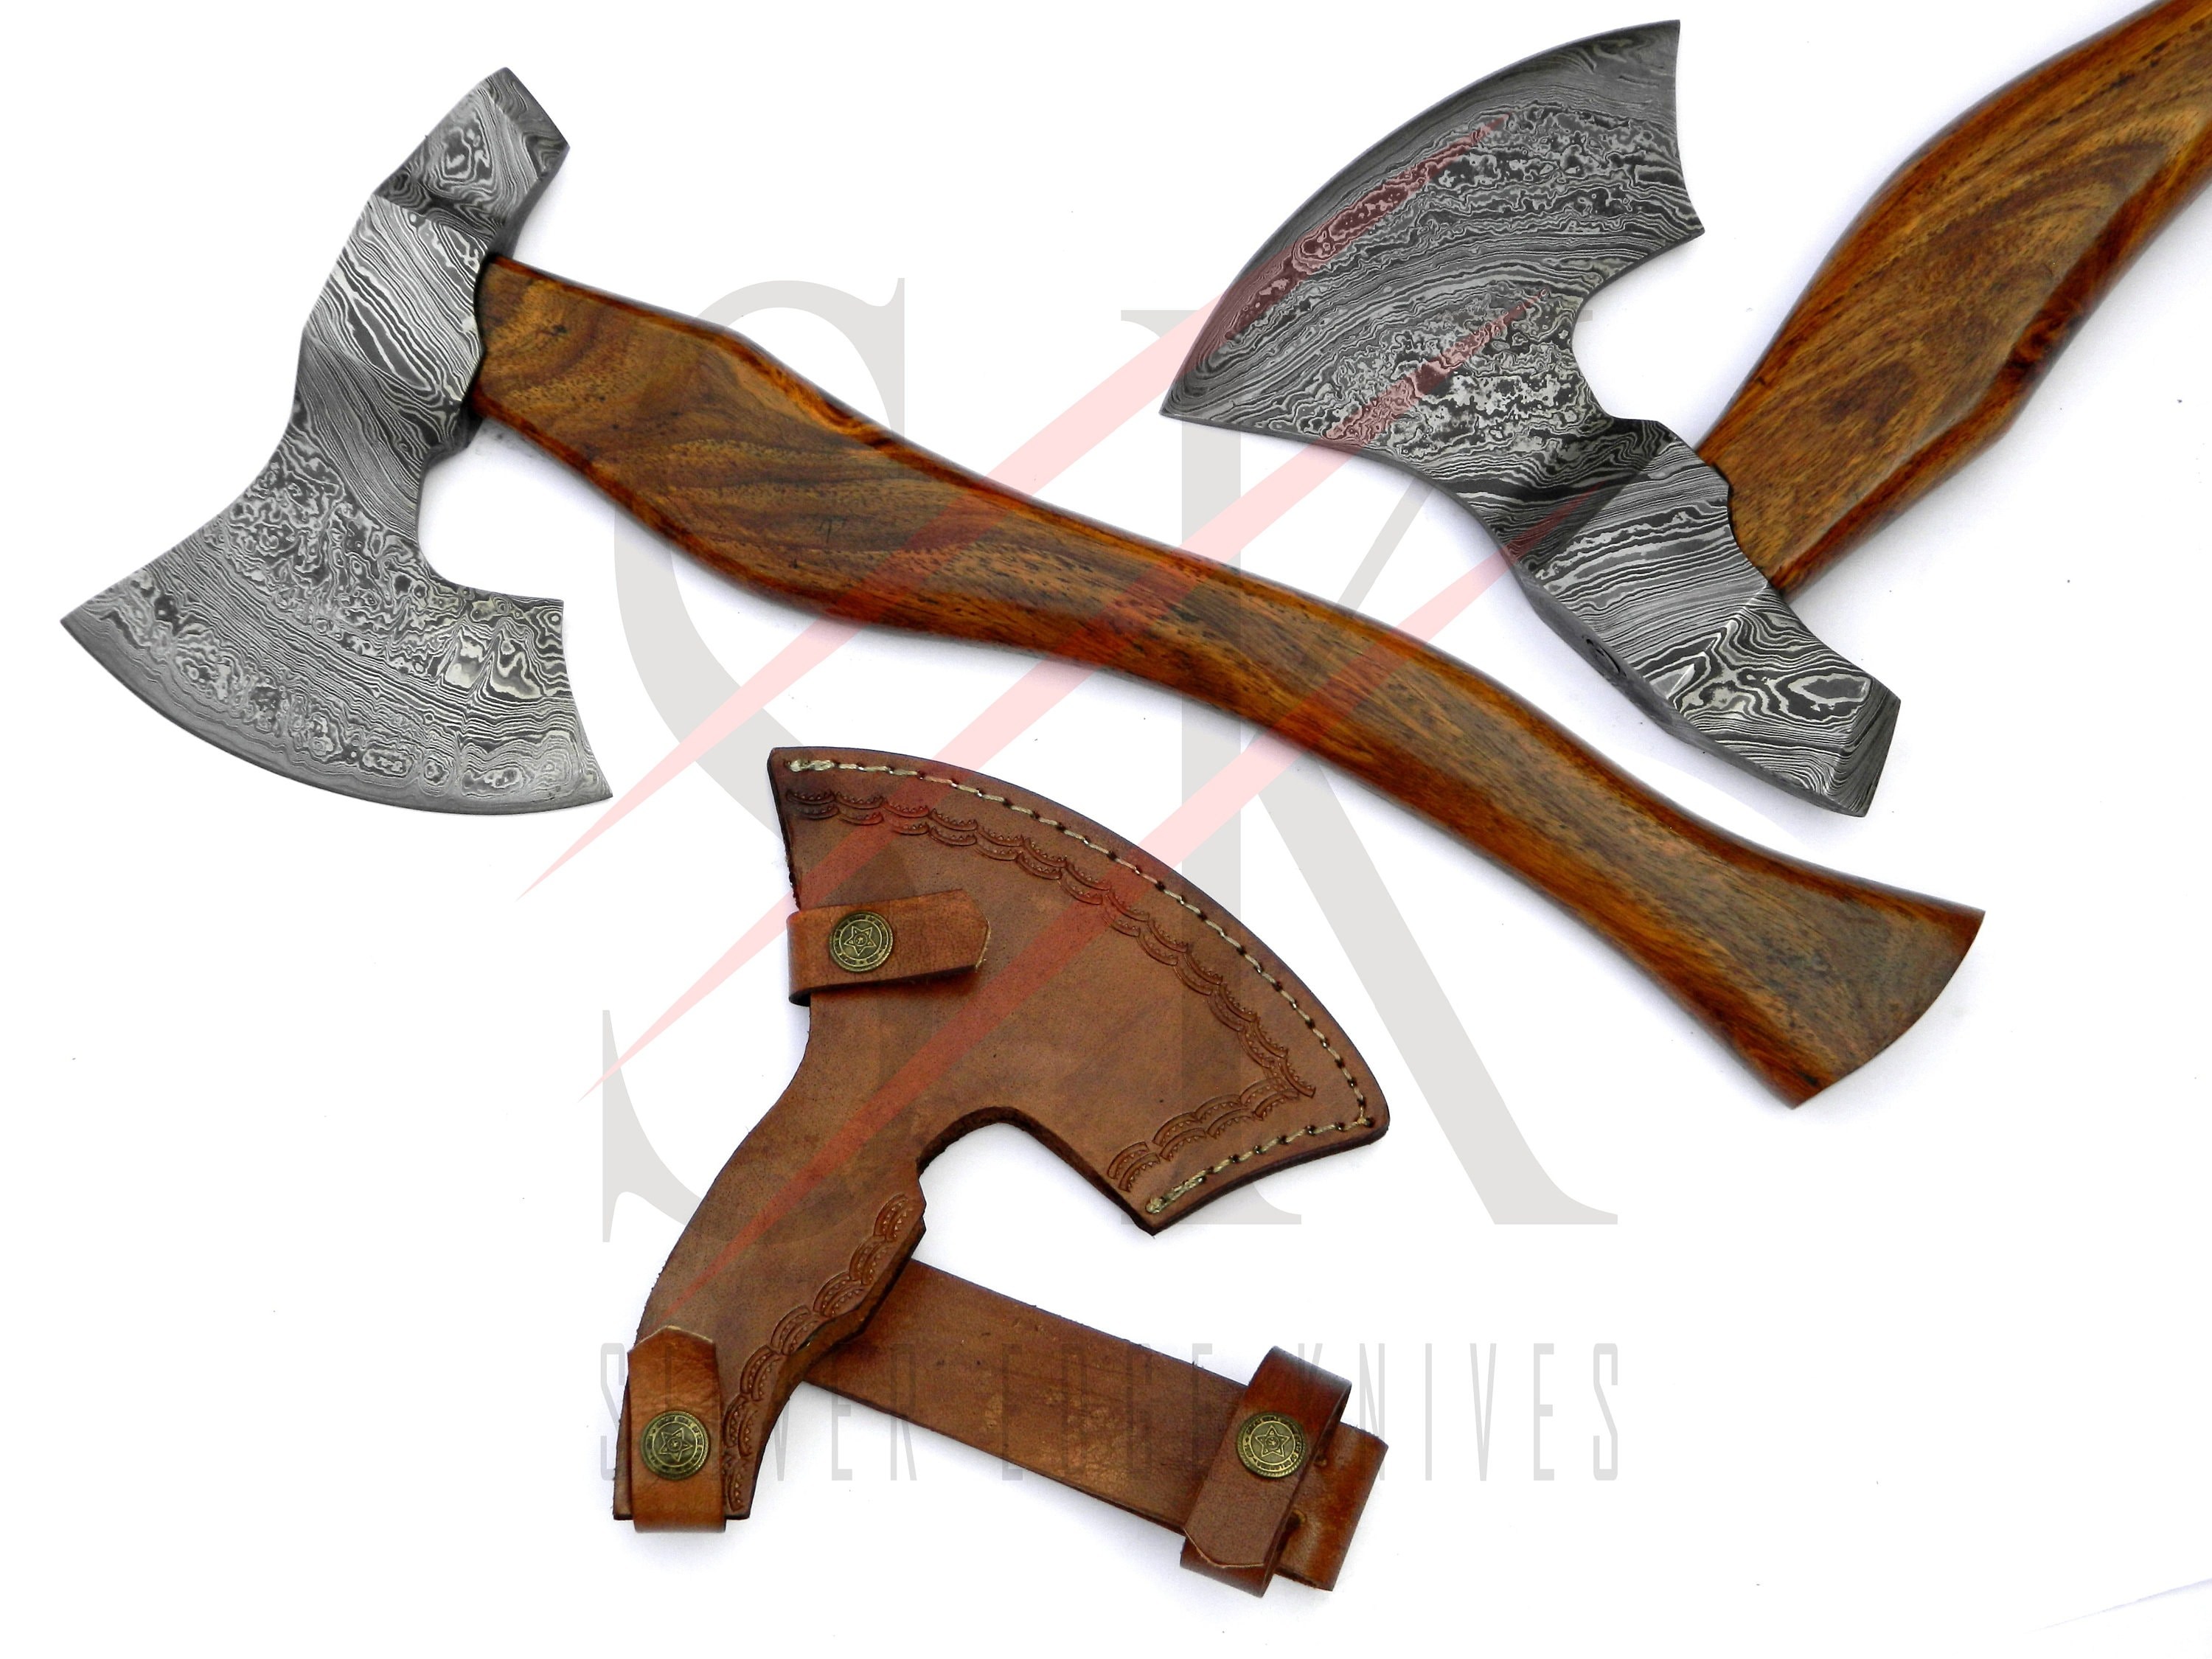 THE MOST AMAZING HAND MADE DAMASCUS AXE WITH ROSE WOOD HANDLE